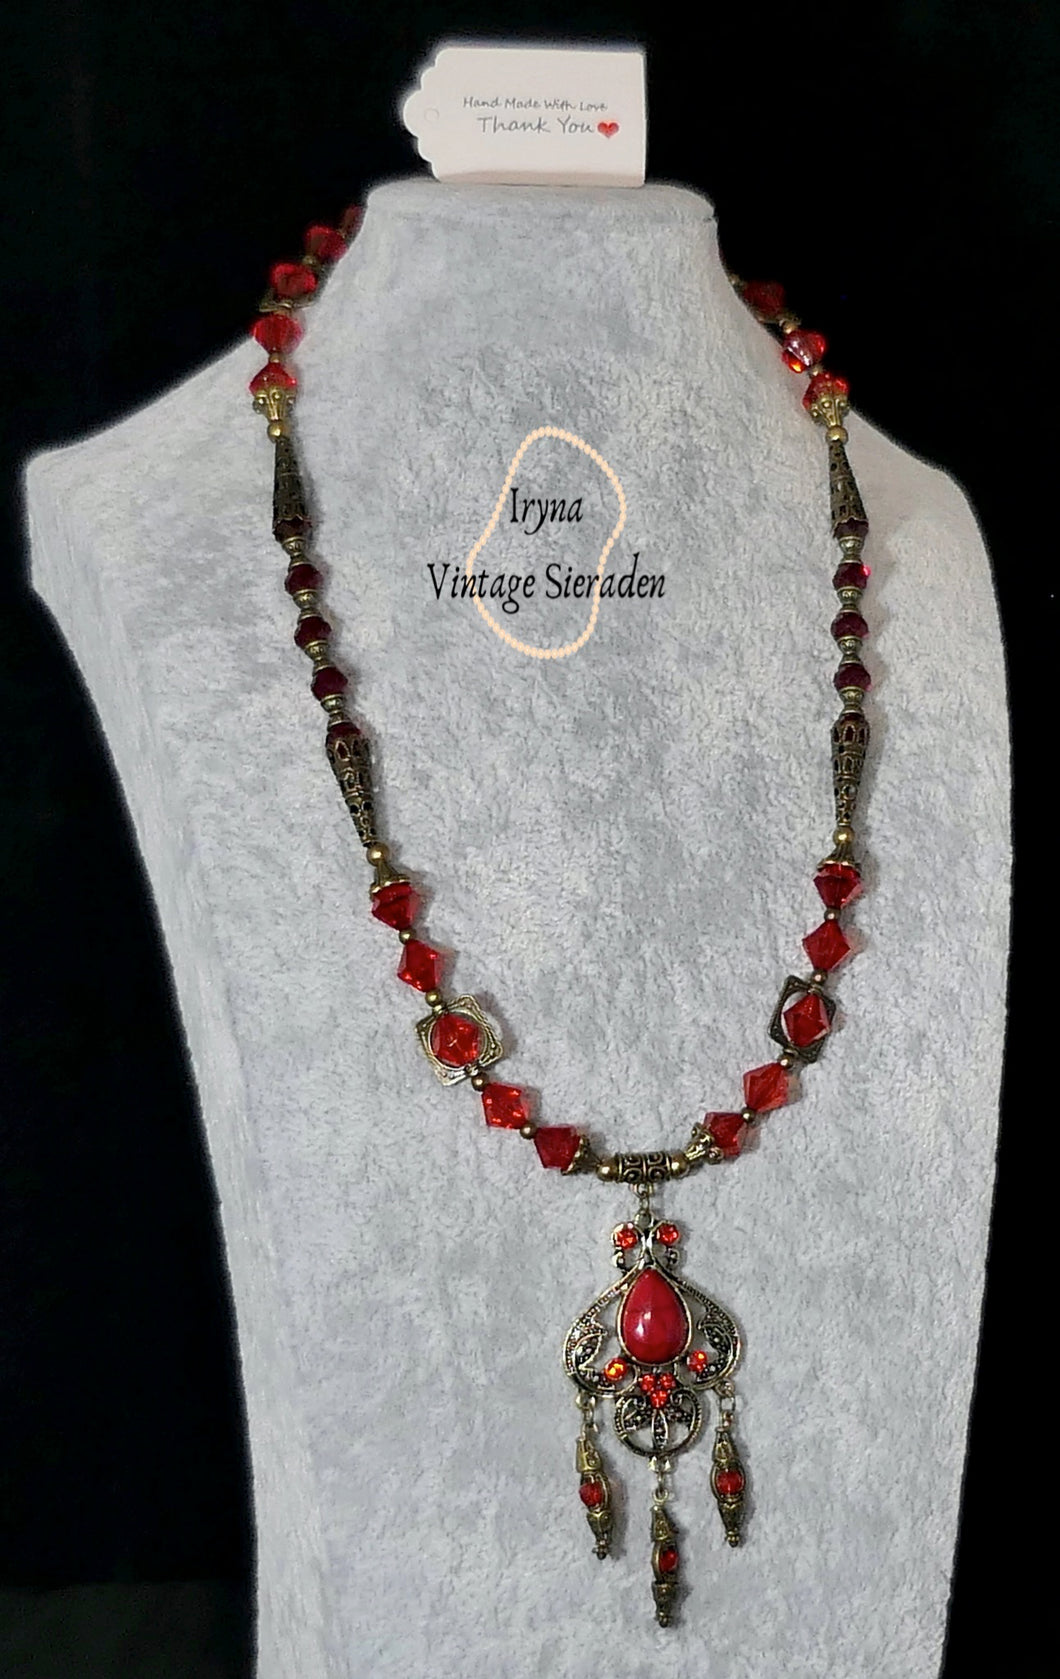 Necklage with Crystal Pendant